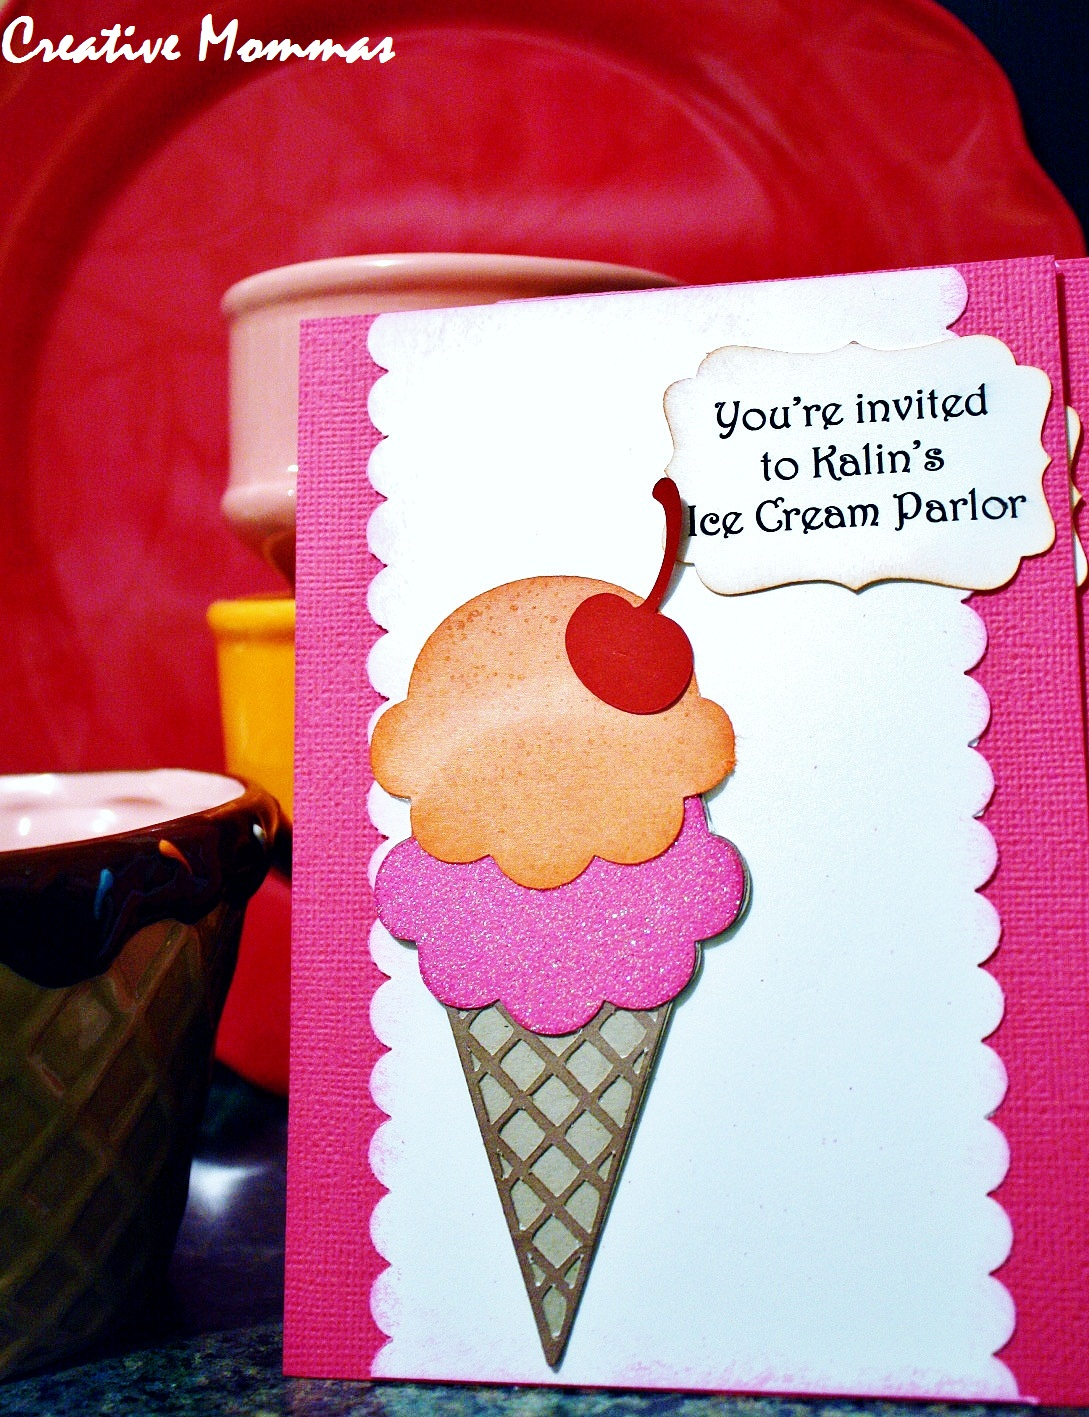 Creative Mommas: Ice Cream Parlor Party Invitations